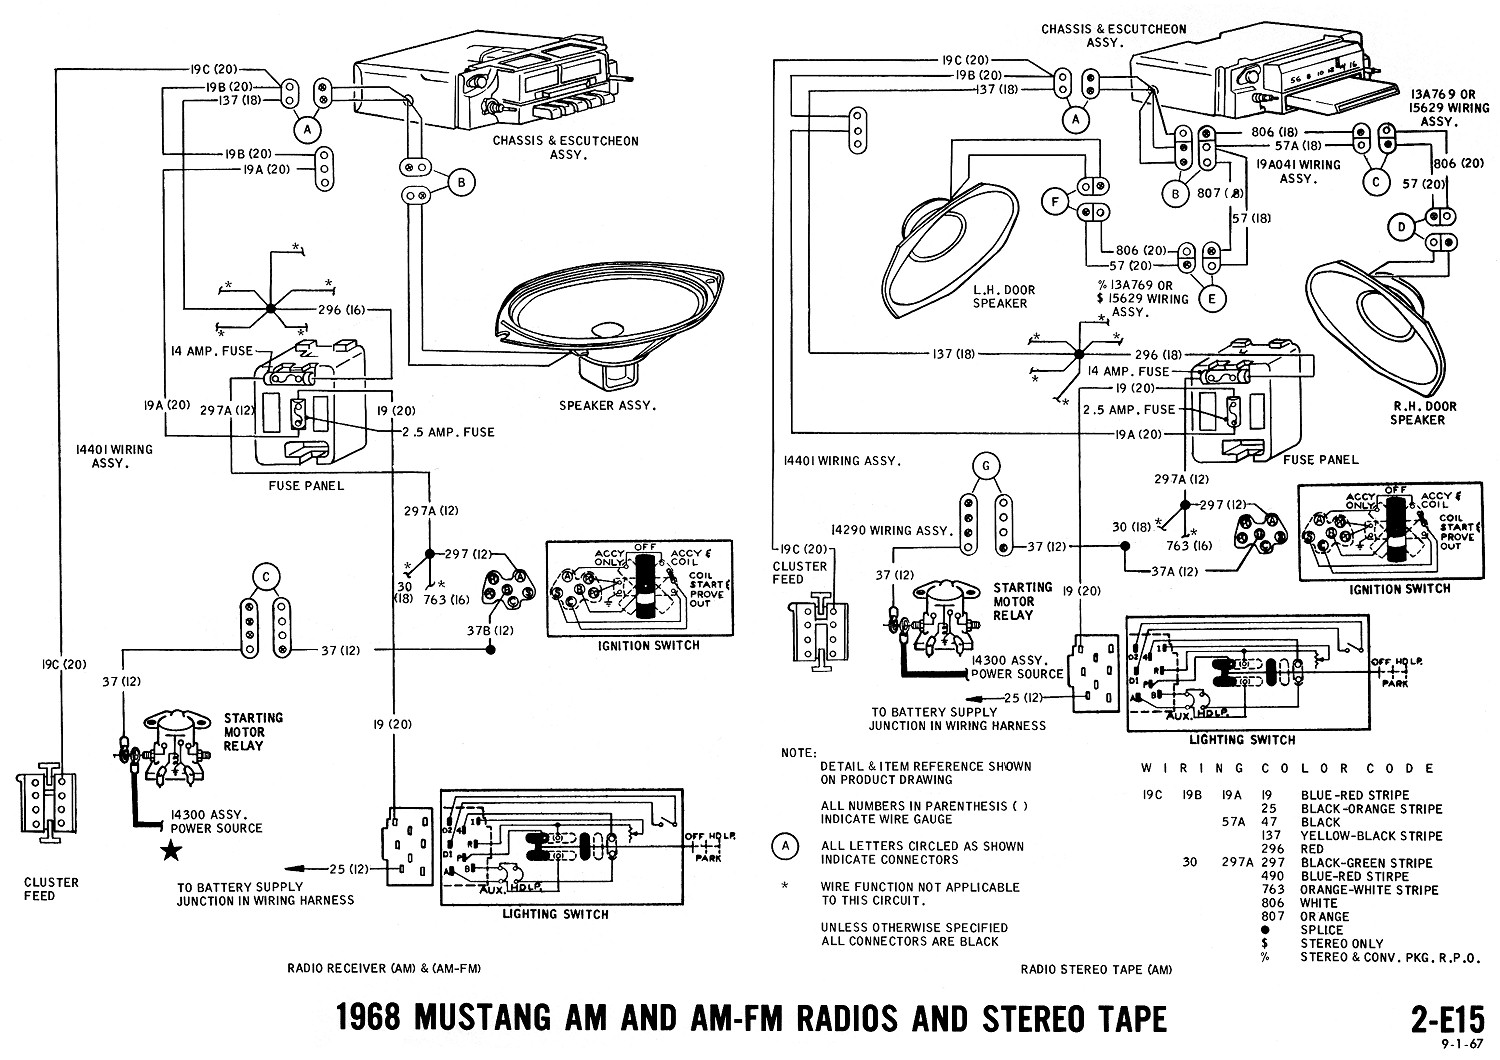 1968 Mustang Wiring Diagrams Evolving Software Wiring-Diagram 1968 Mustang  Coupe Wiring Diagram For A 1968 Ford Mustang